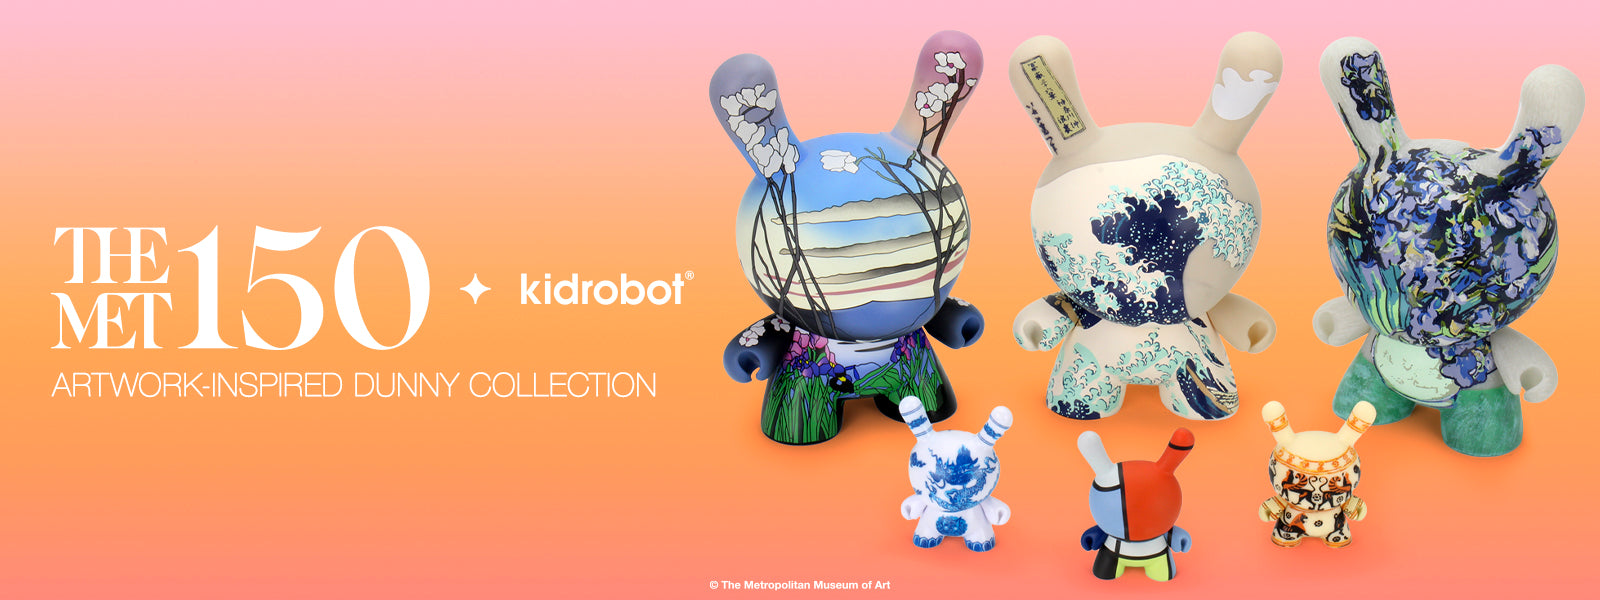 Kidrobot x The MET Dunny Collection